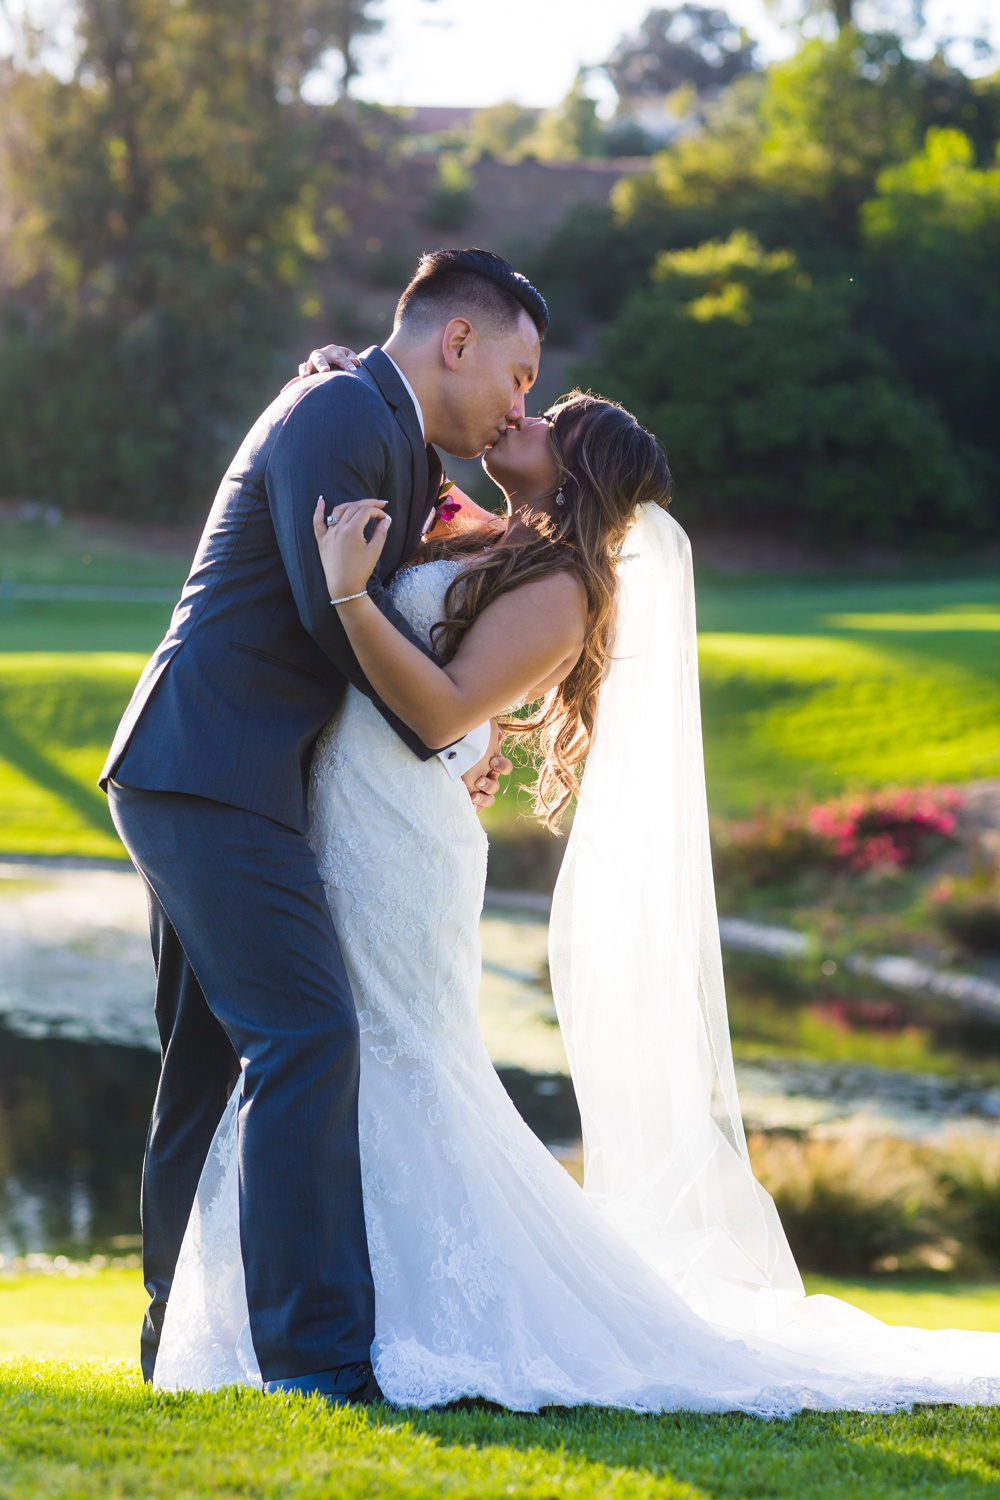 Friendly Hills Country Club Wedding, Whittier, CA. Photo by Belinda Philleo